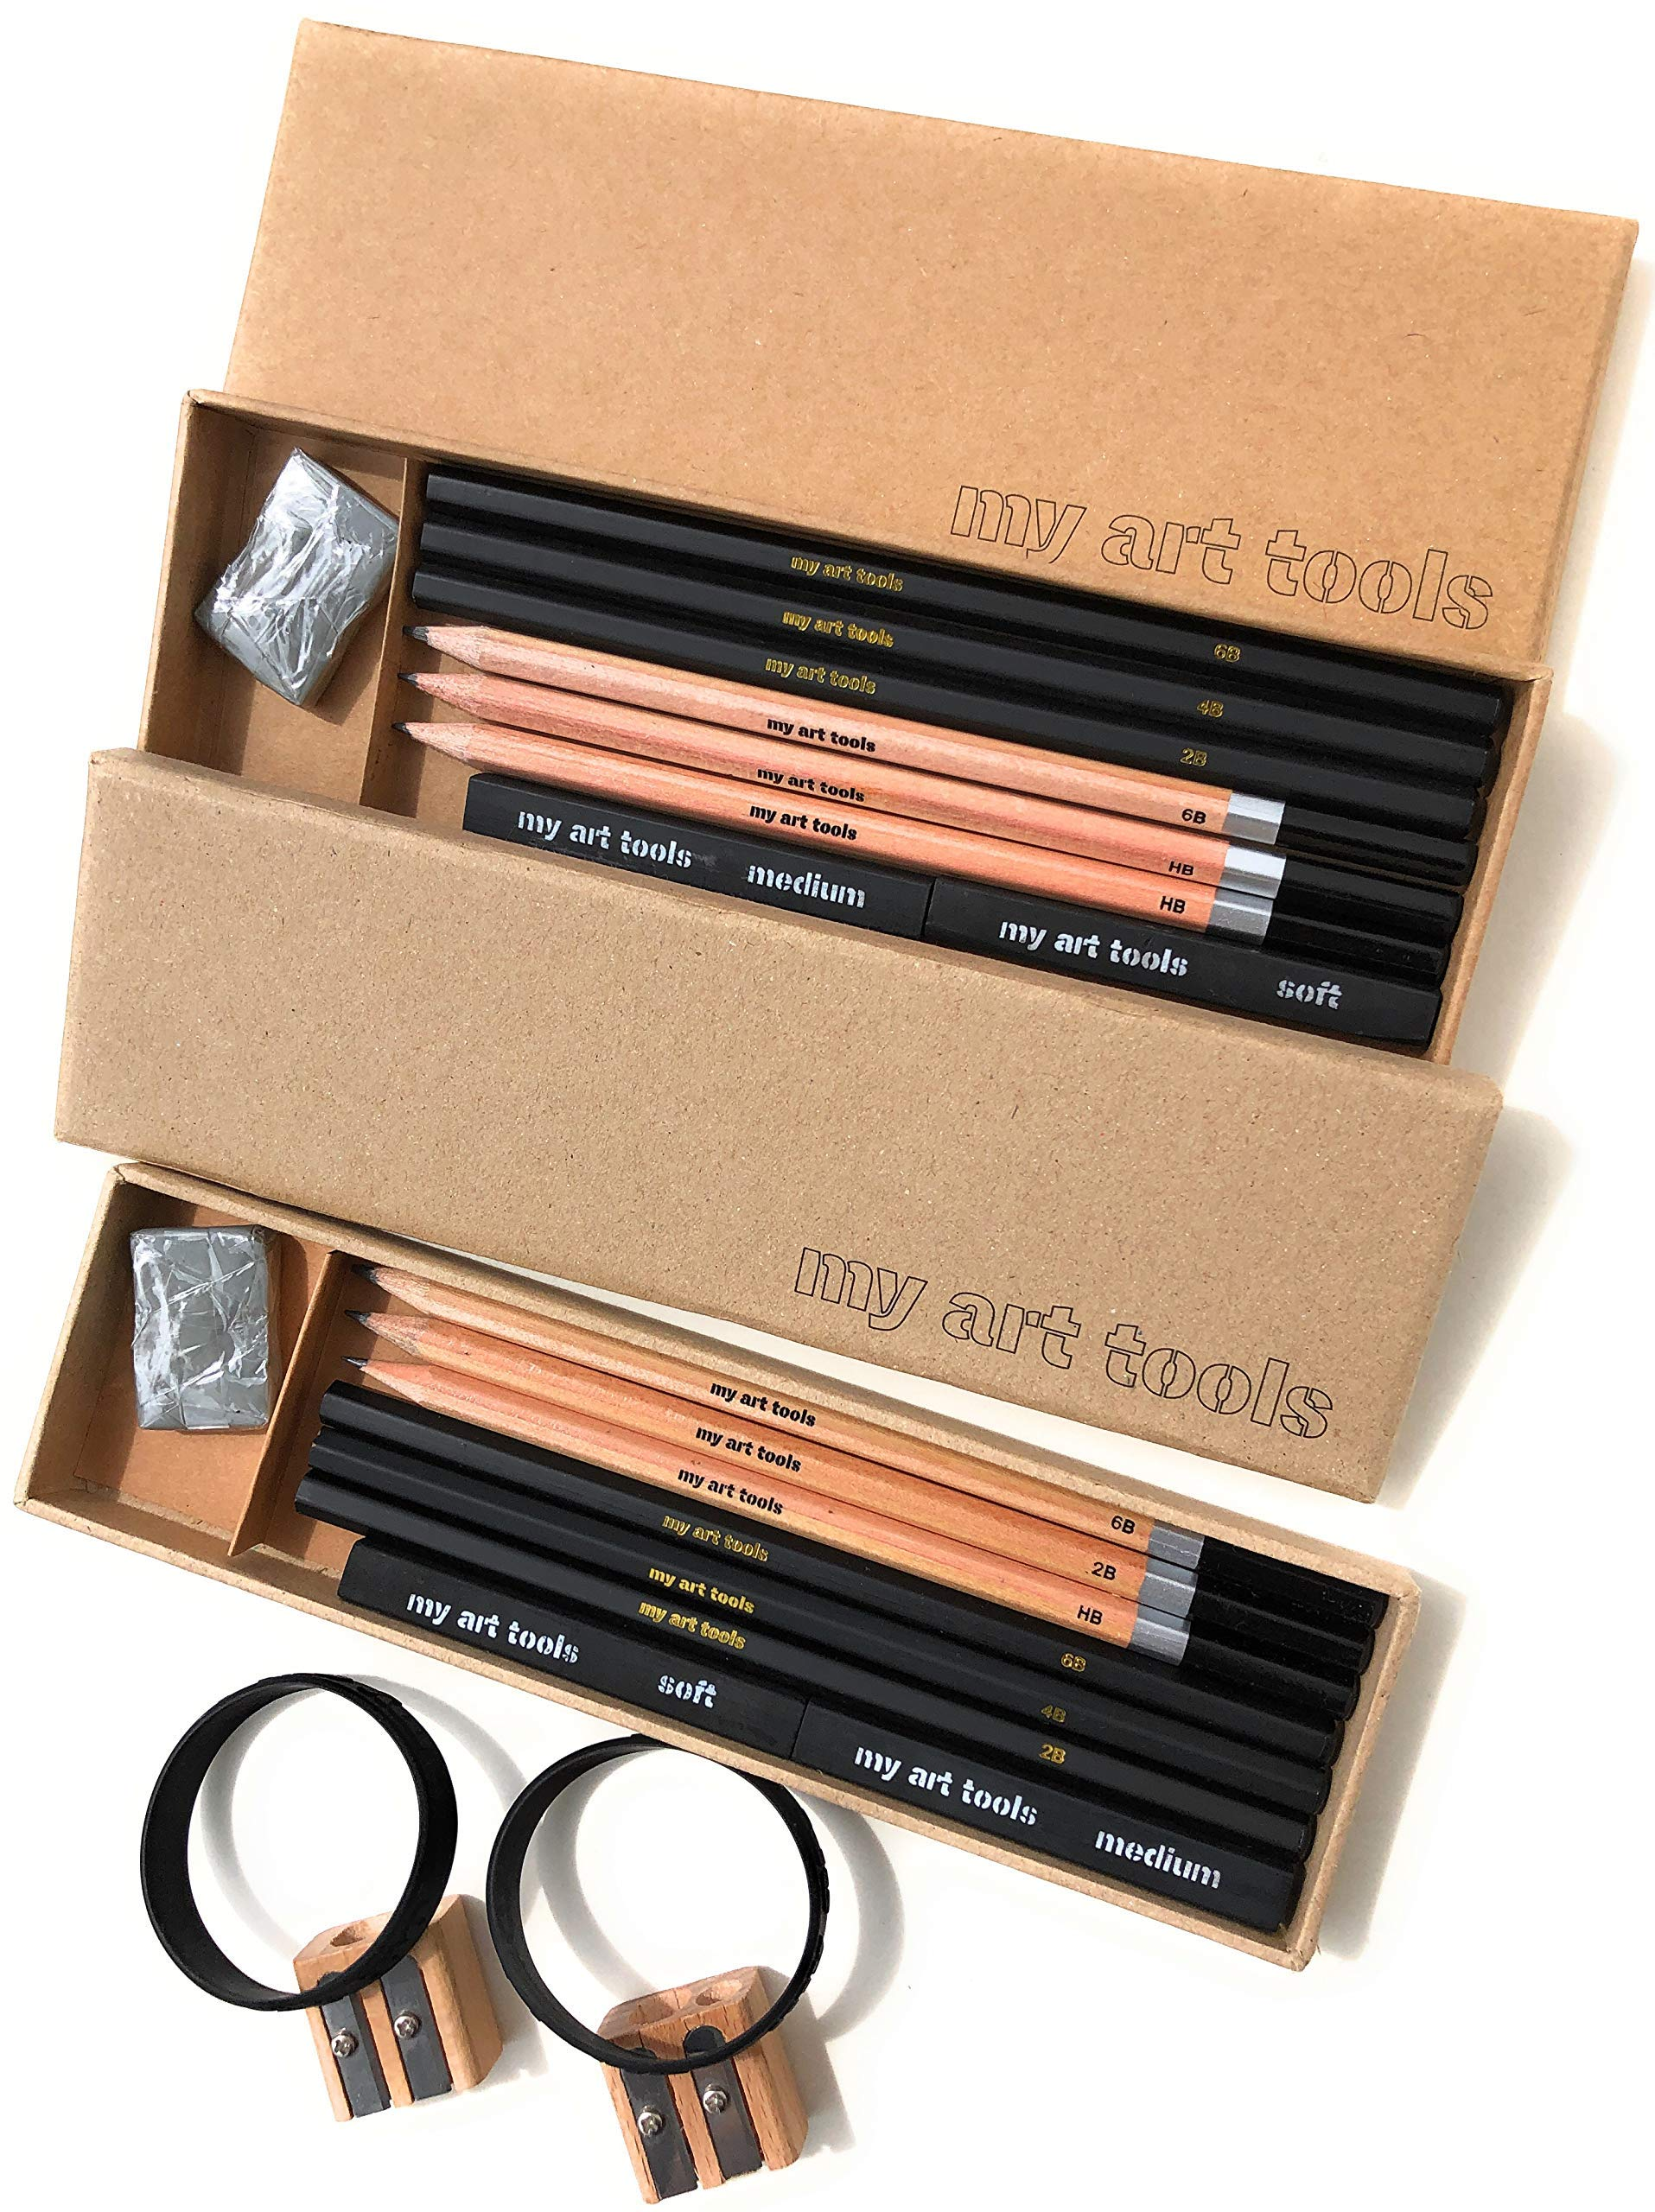 MY ART TOOLS DRAWING PENCILS - Sets for Professional Sketch Artists Include Charcoal & Graphite pencils, Compressed Sticks,Sharpener, Kneaded Eraser in 2 Art Sets, 10 Pieces EACH kit - non plastic box